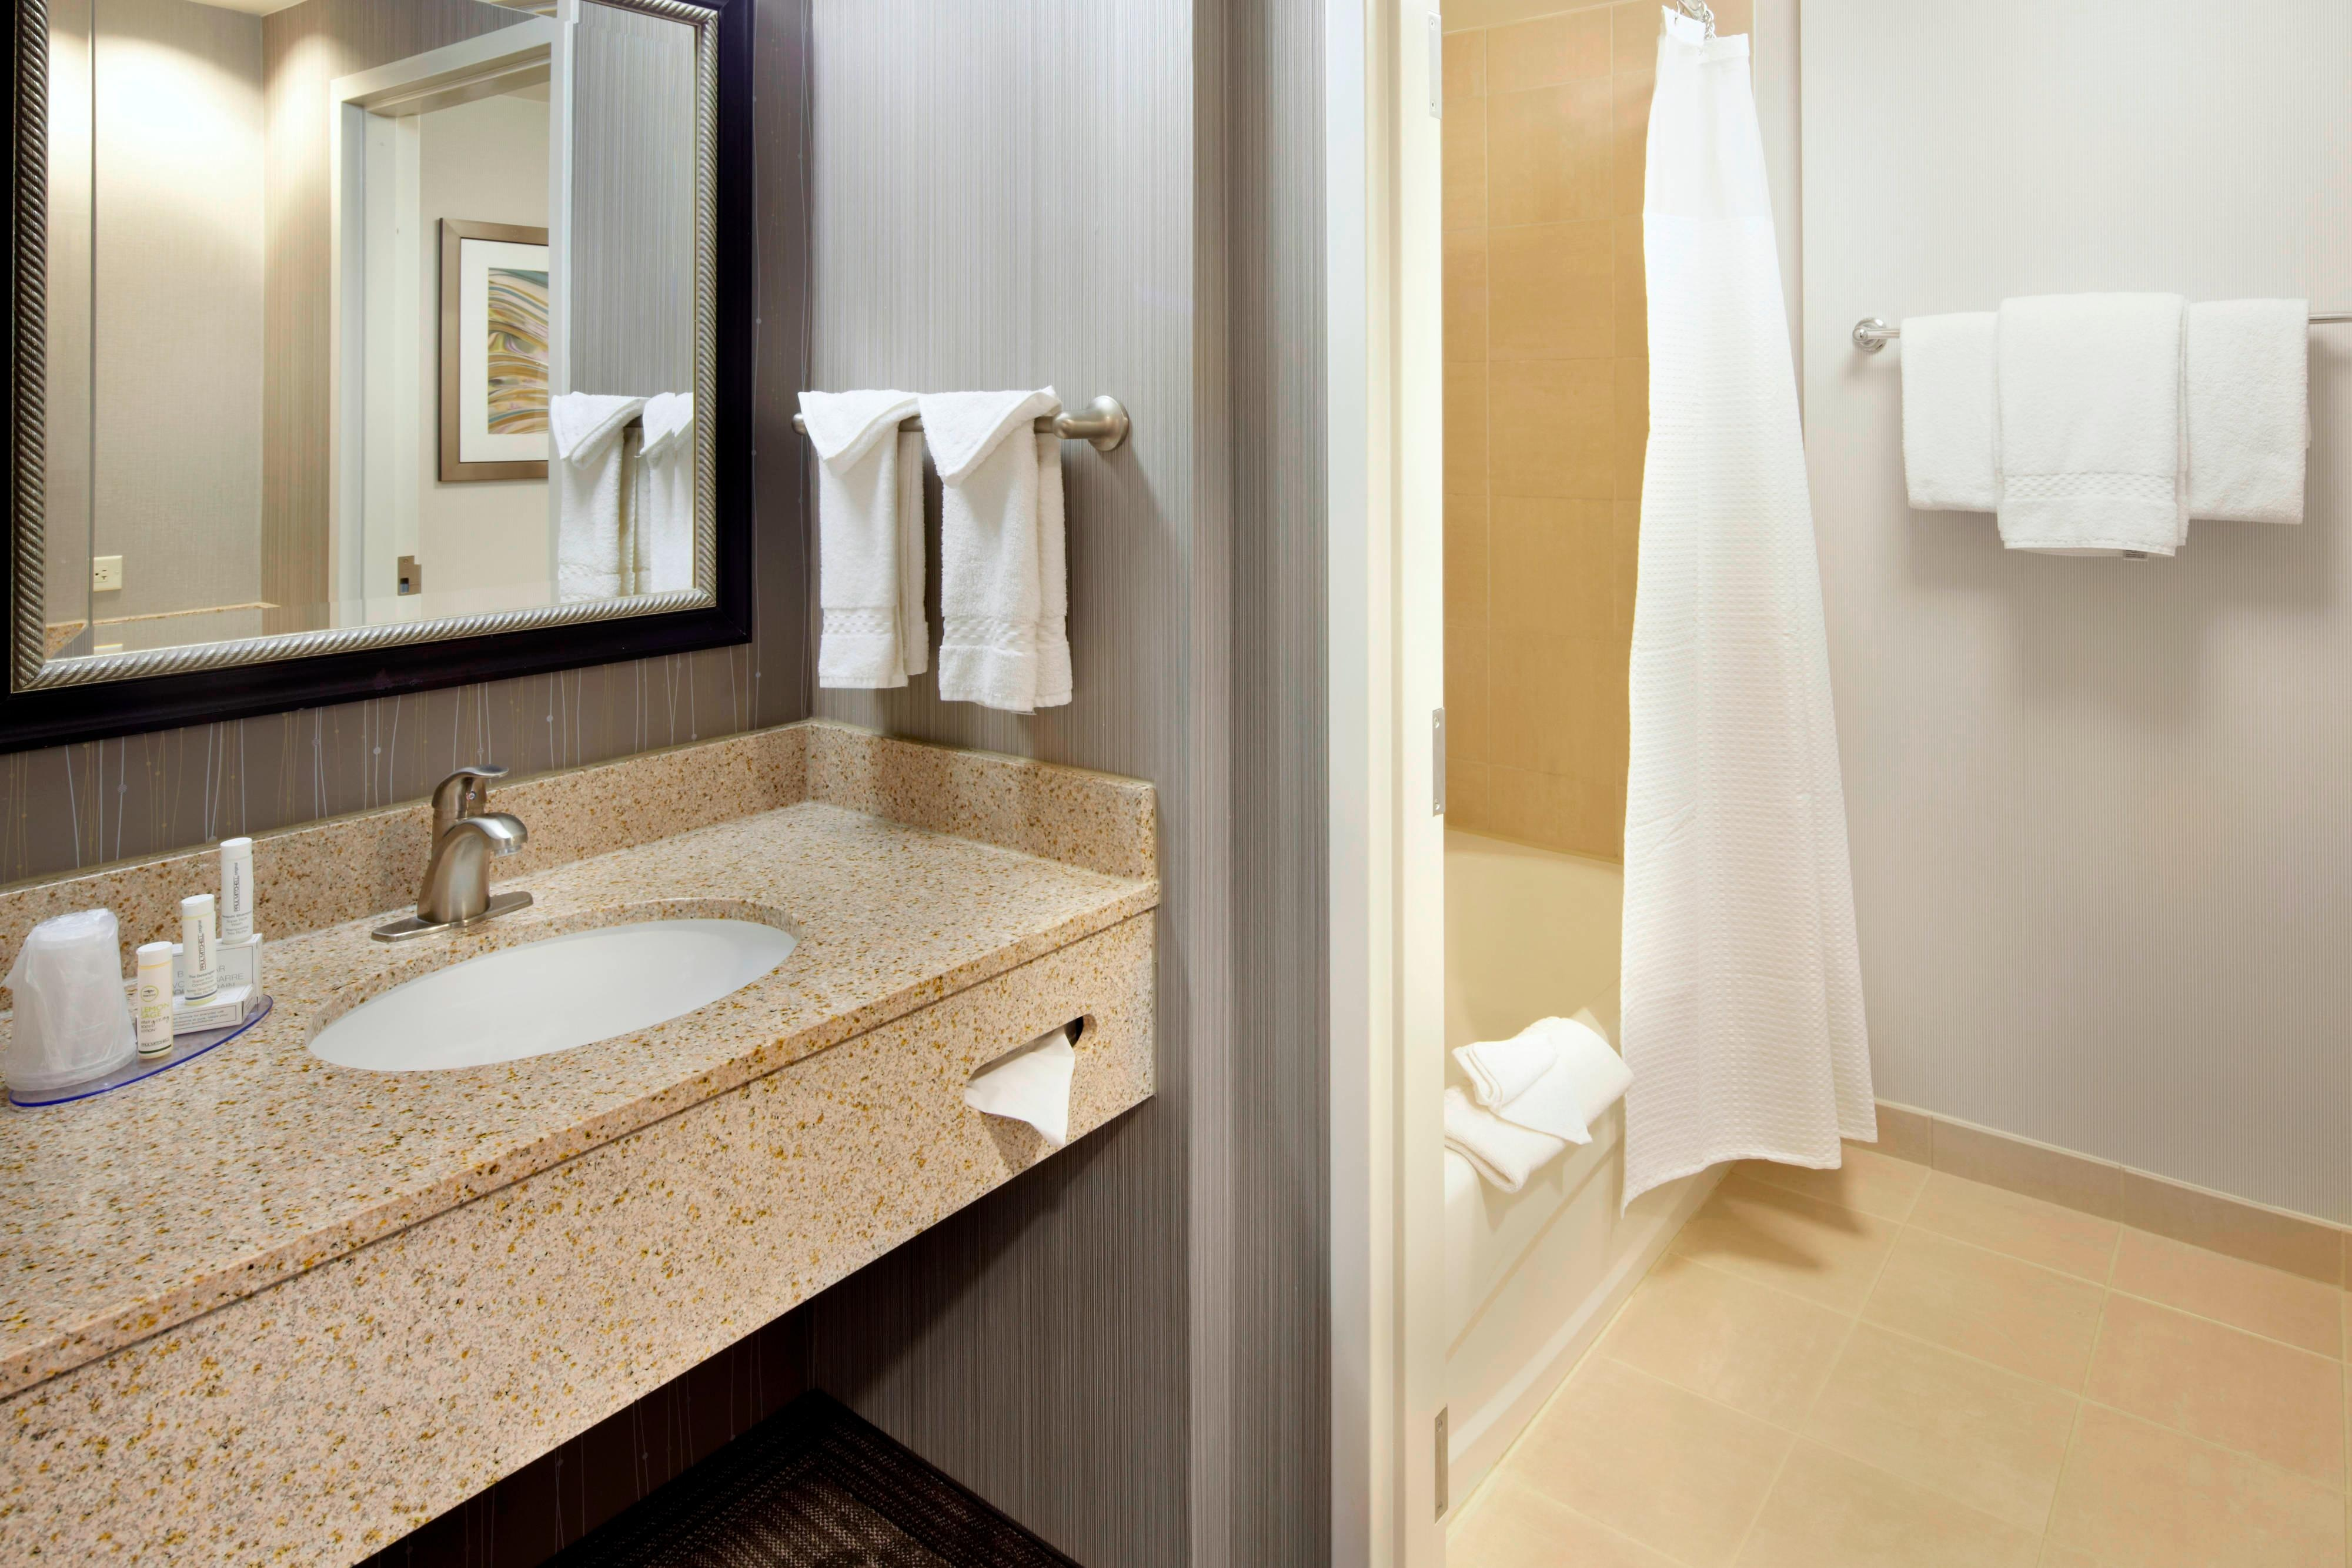 Guest Bathroom – Bathtub